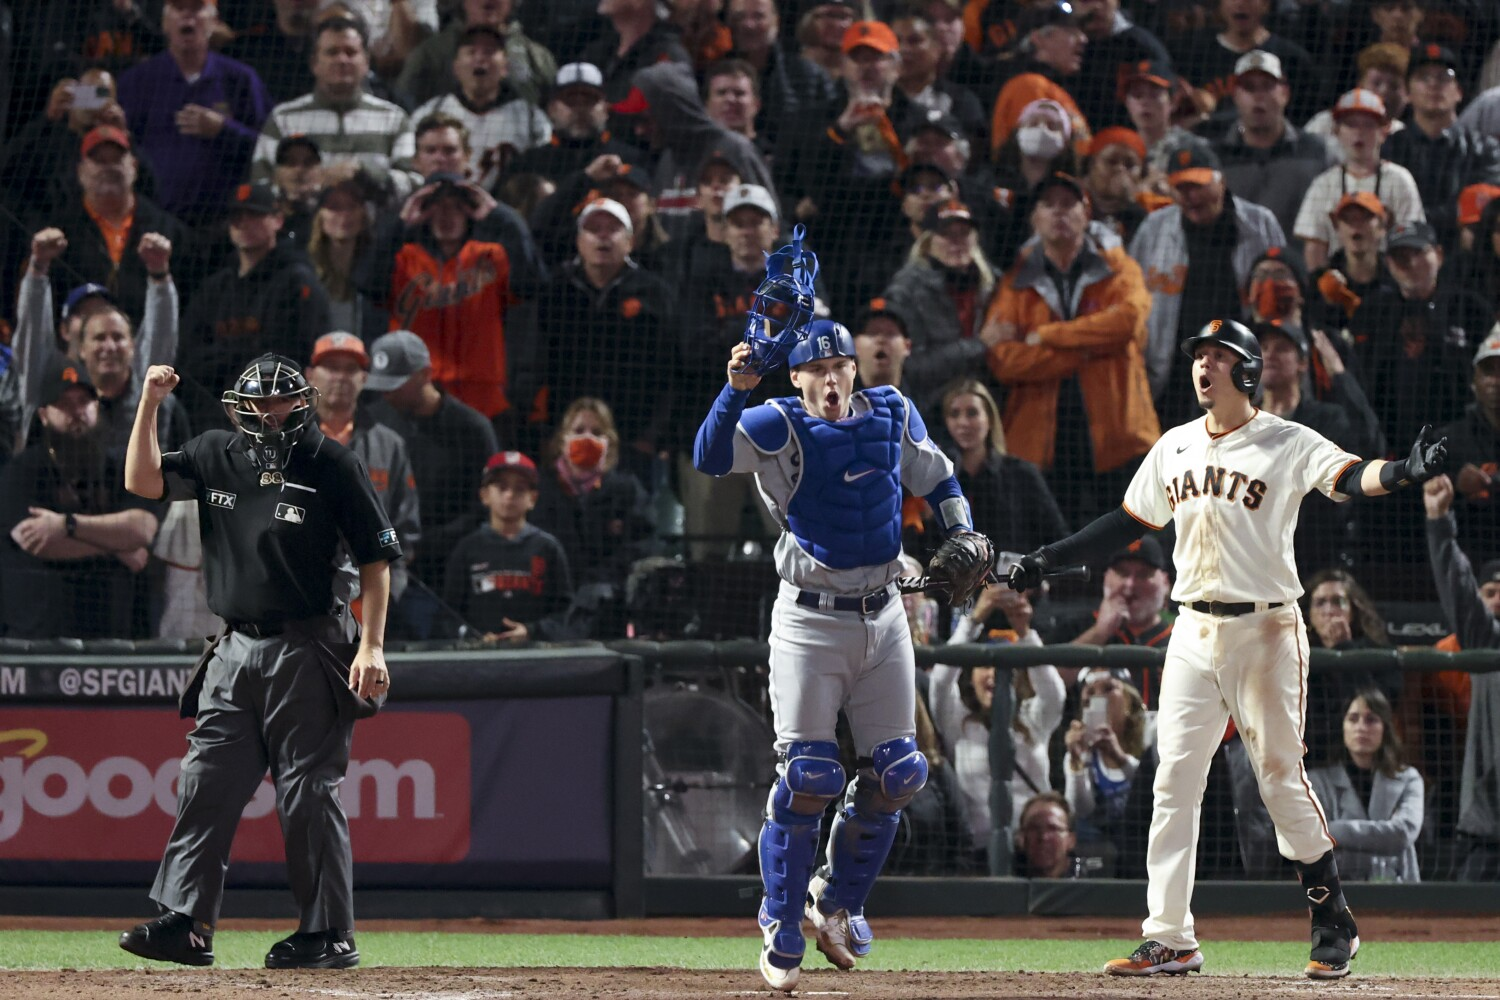 Dodgers-Giants rivalry is a showdown between the two Californias